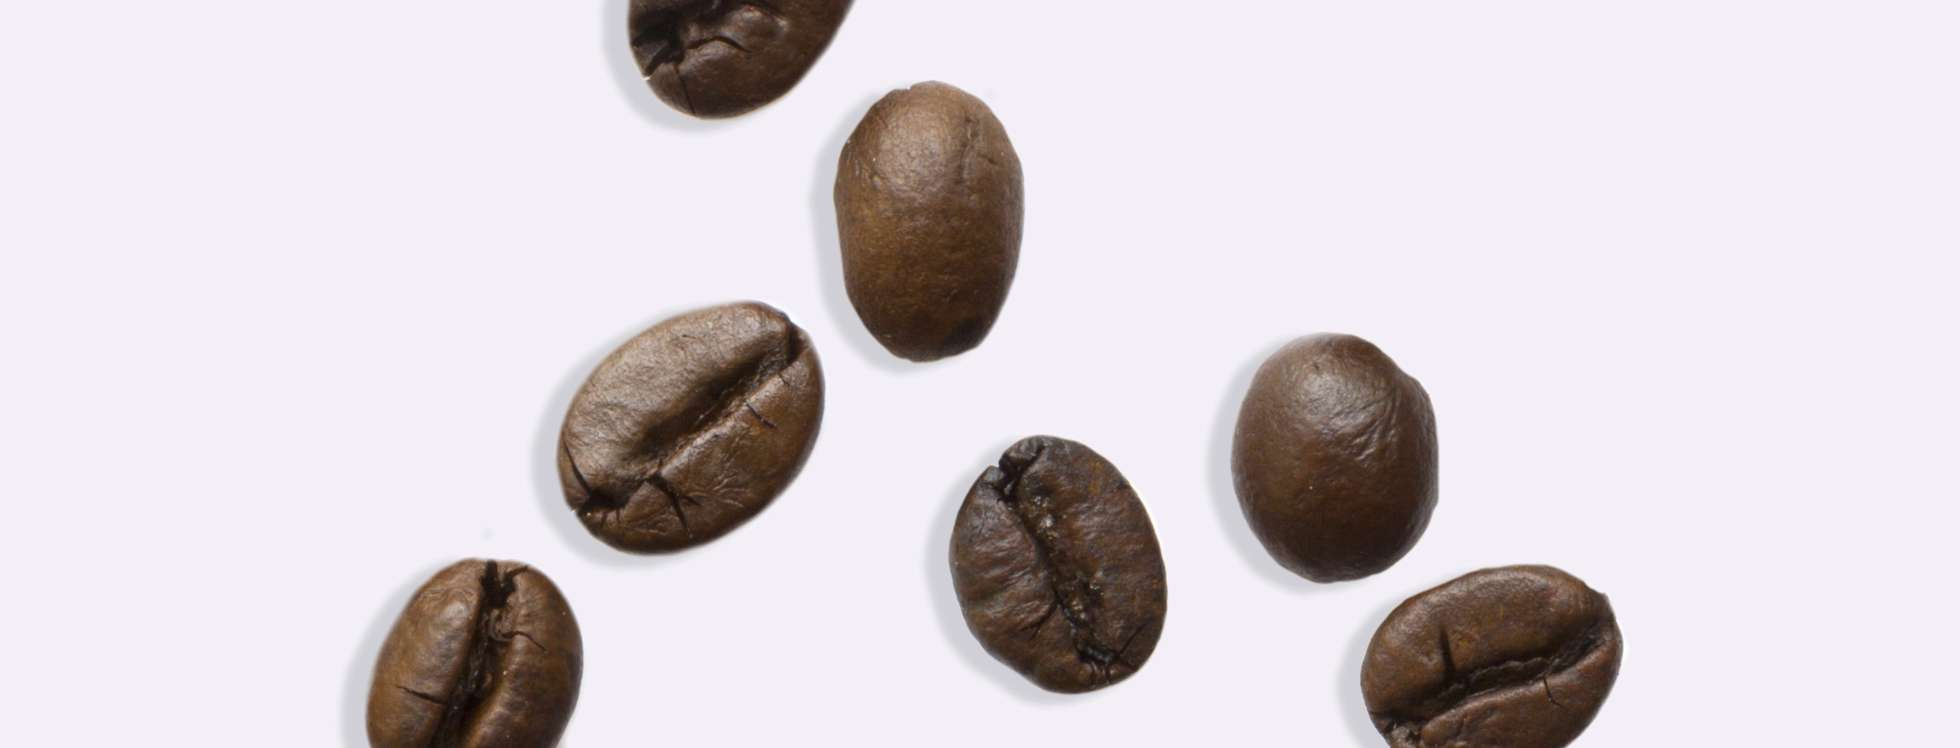 Coffee beans on grey background